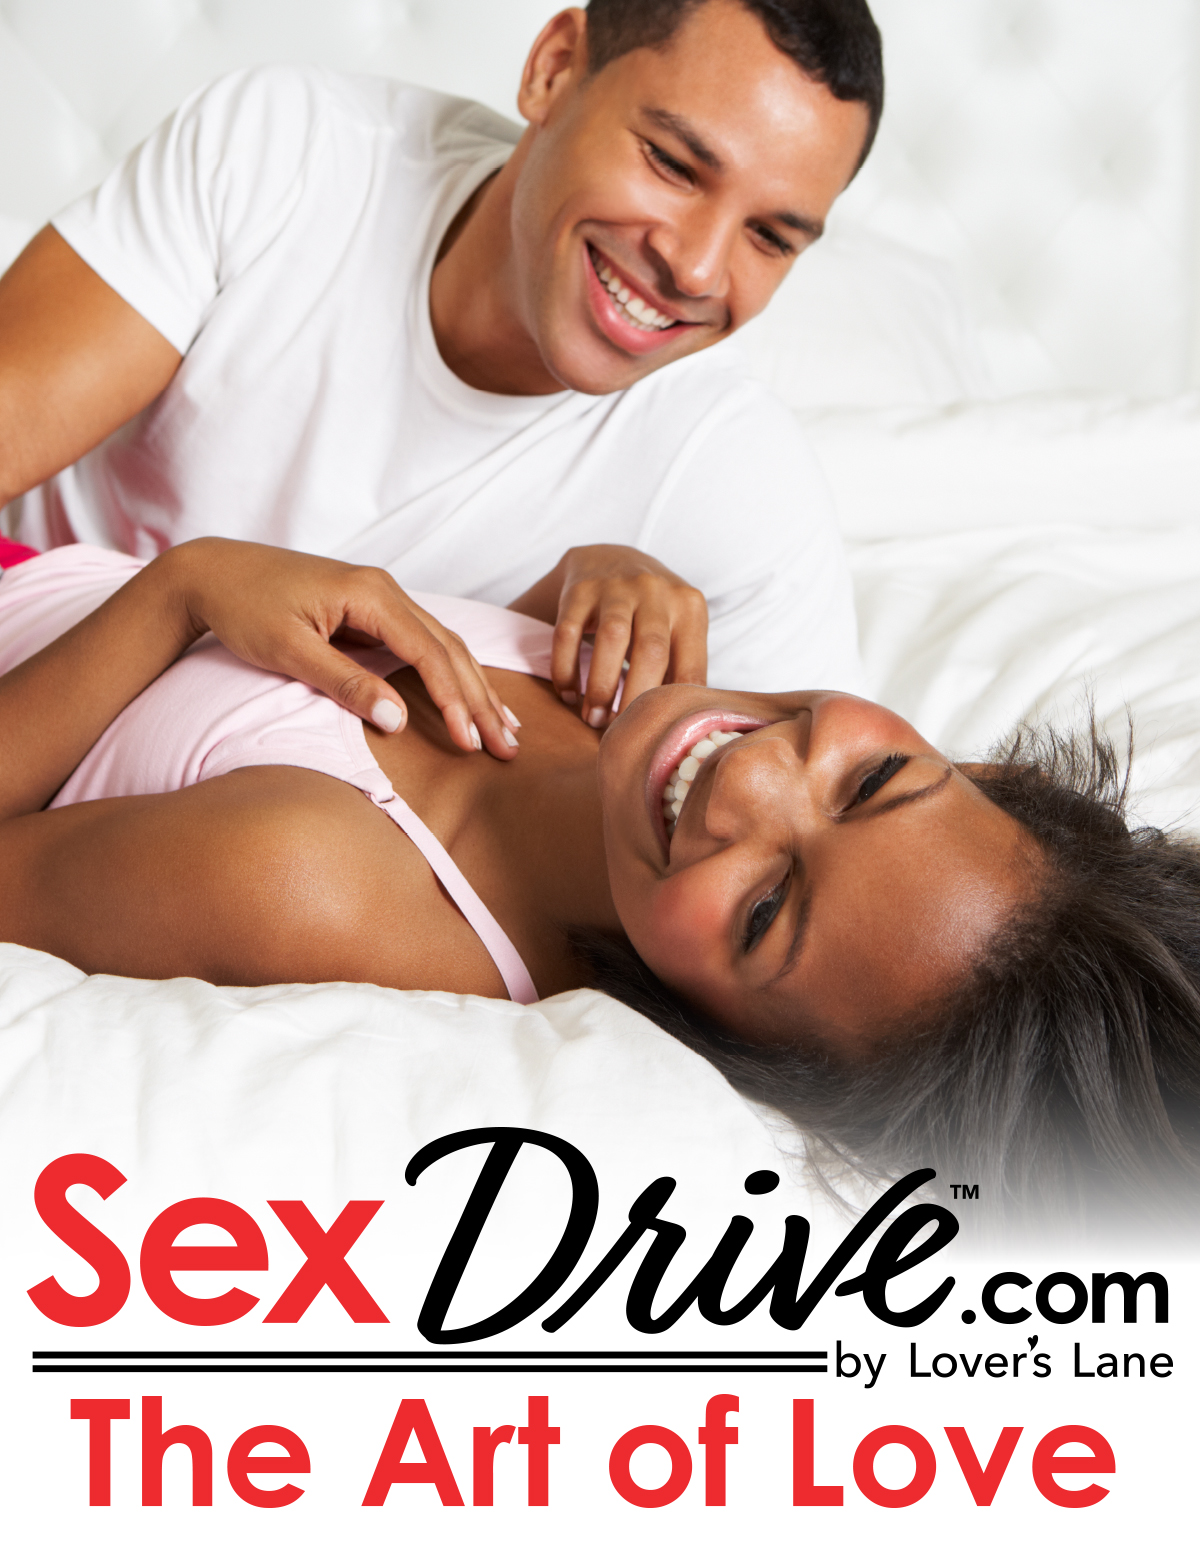 The Art of Love - SexDrive.com